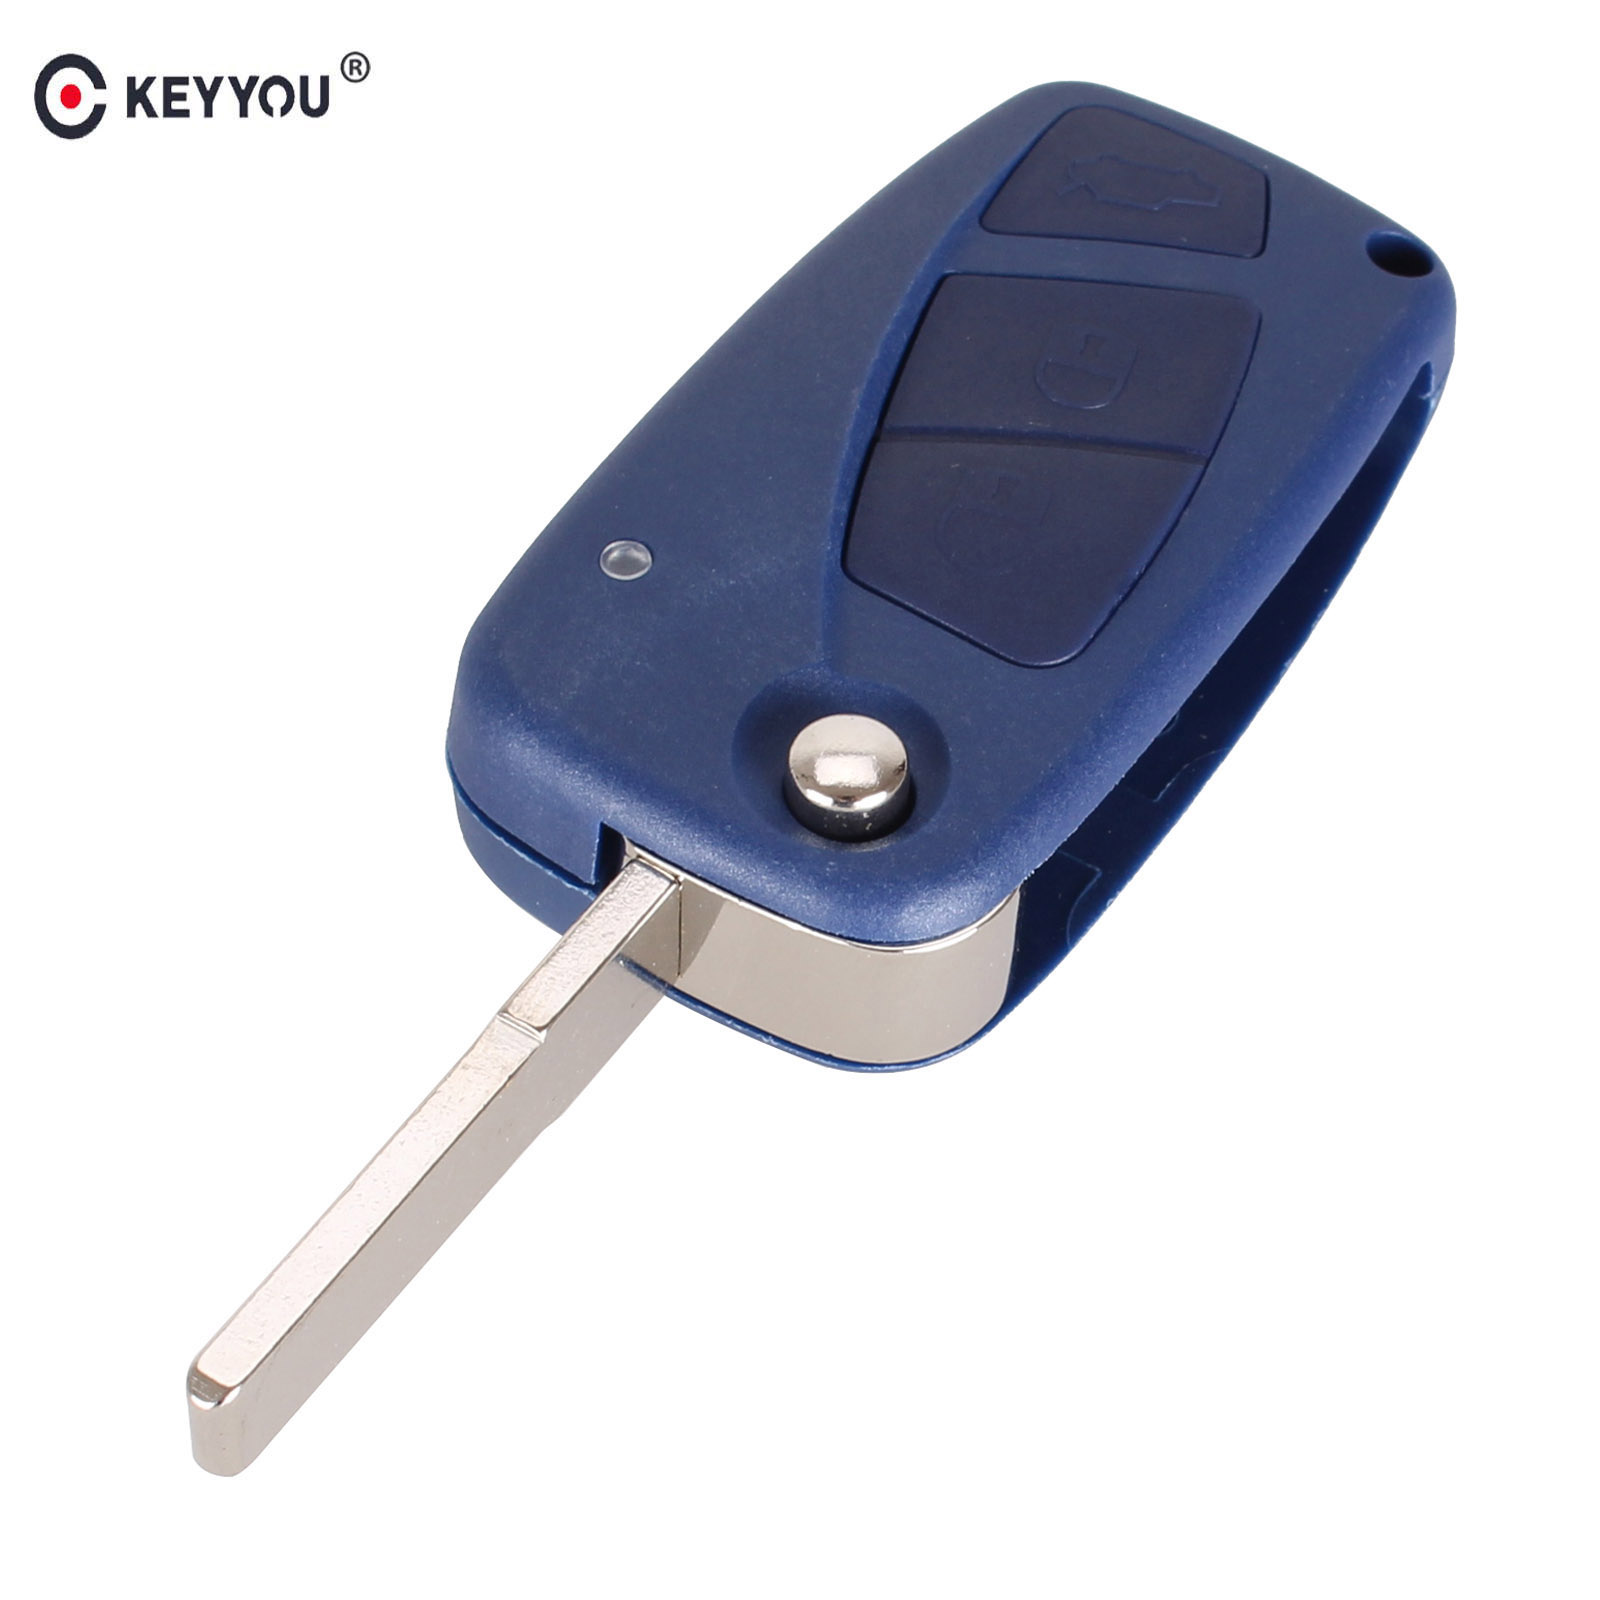 KEYYOU Flip Remote Key Shell for FIAT Punto Ducato Stilo Panda Idea Doblo Bravo Keyless Fob Case 3 Buttons Car Alarm Cover replacement folding key case shell for vw golf 7 no chip for volkswagen remote keyless shell auto parts key case with blade